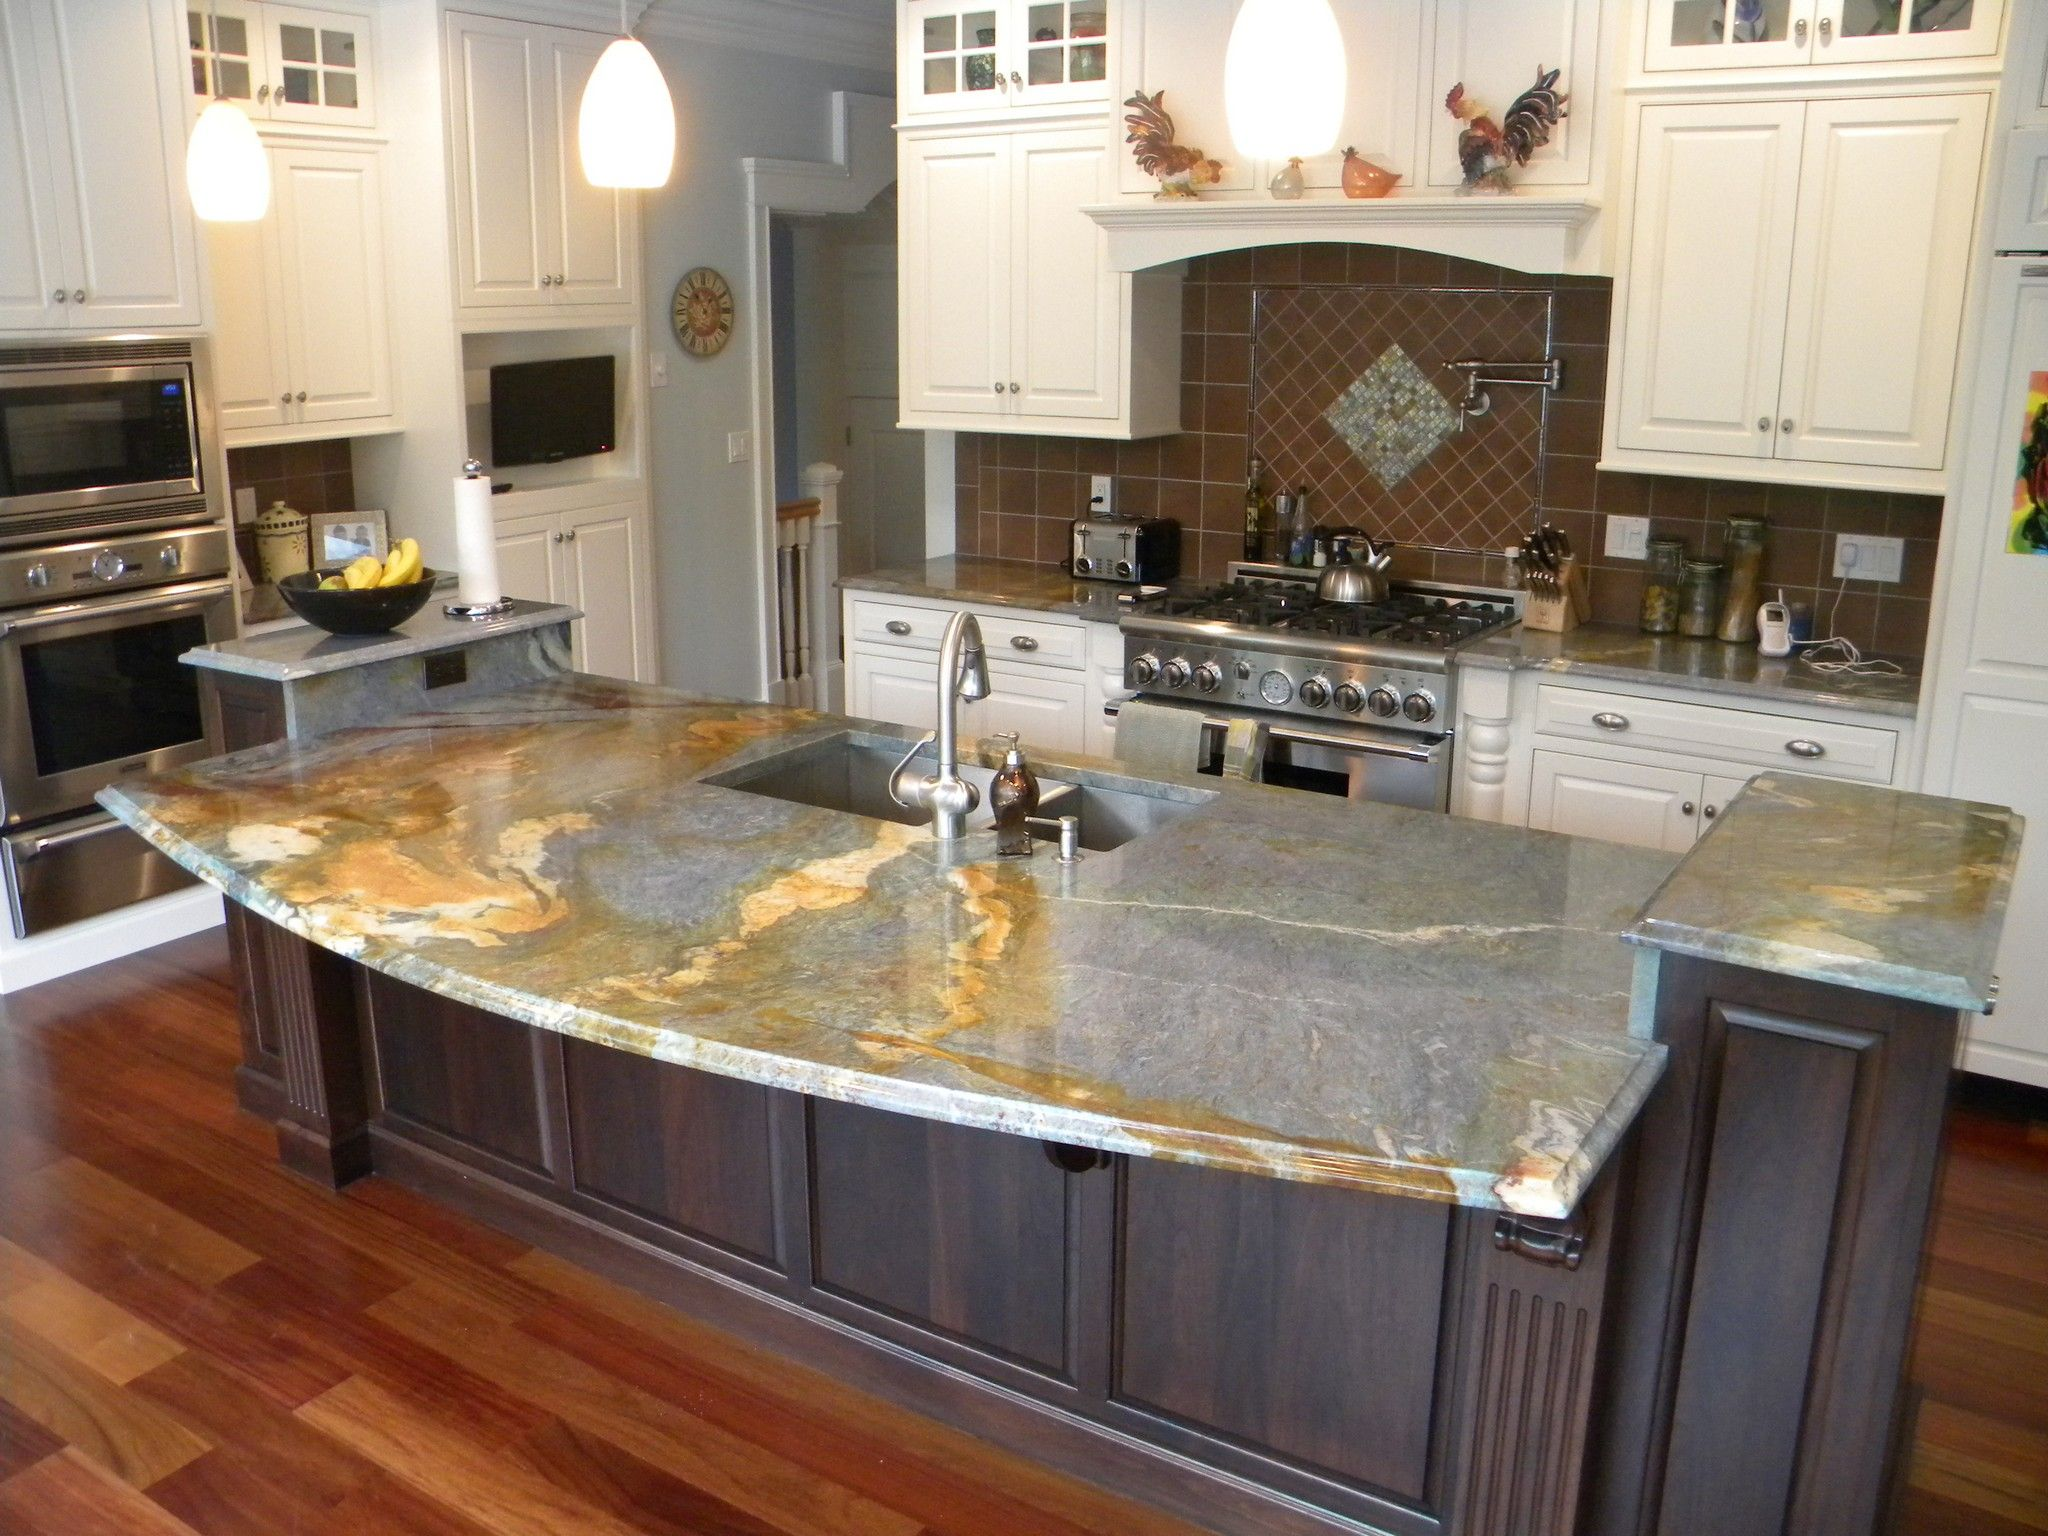 Kitchen Granite Tops Waterfall Countertop Granite Countertops Marble Countertops